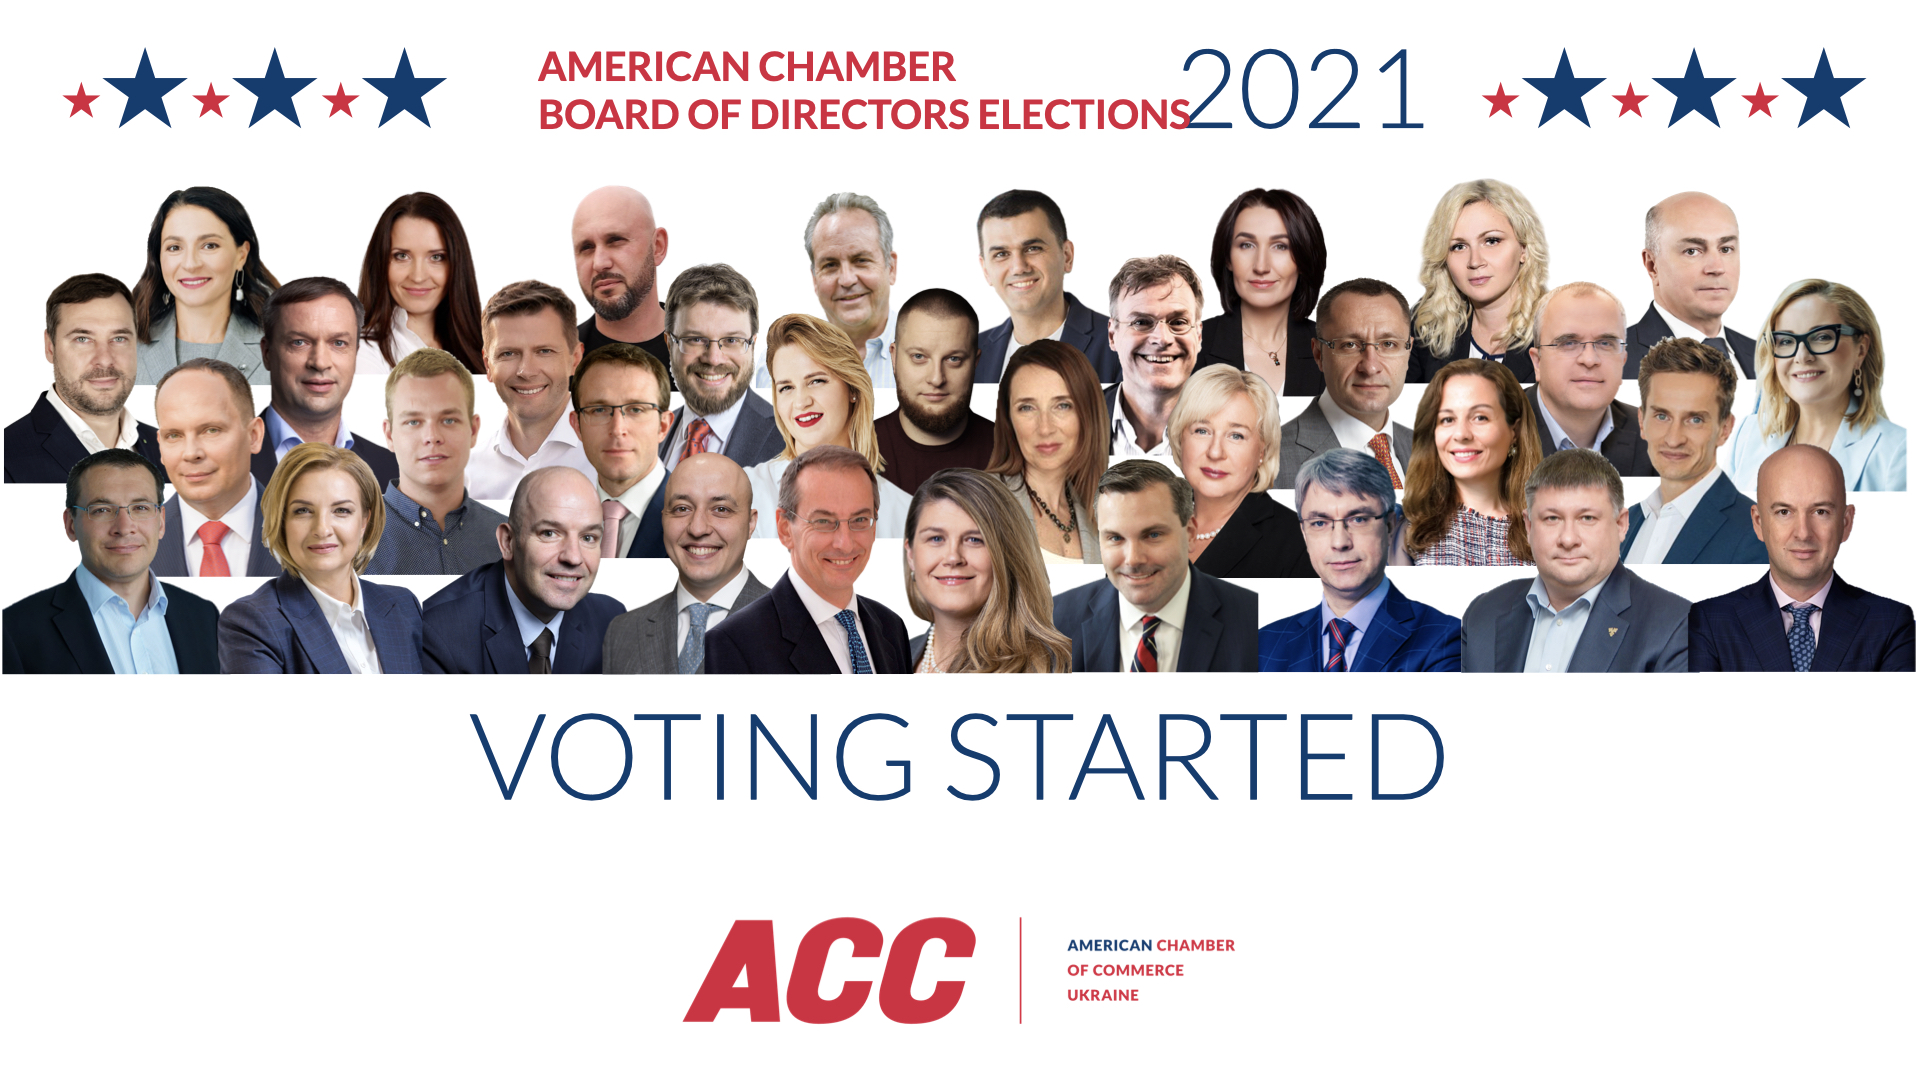 American Chamber Board of Directors Elections 2021